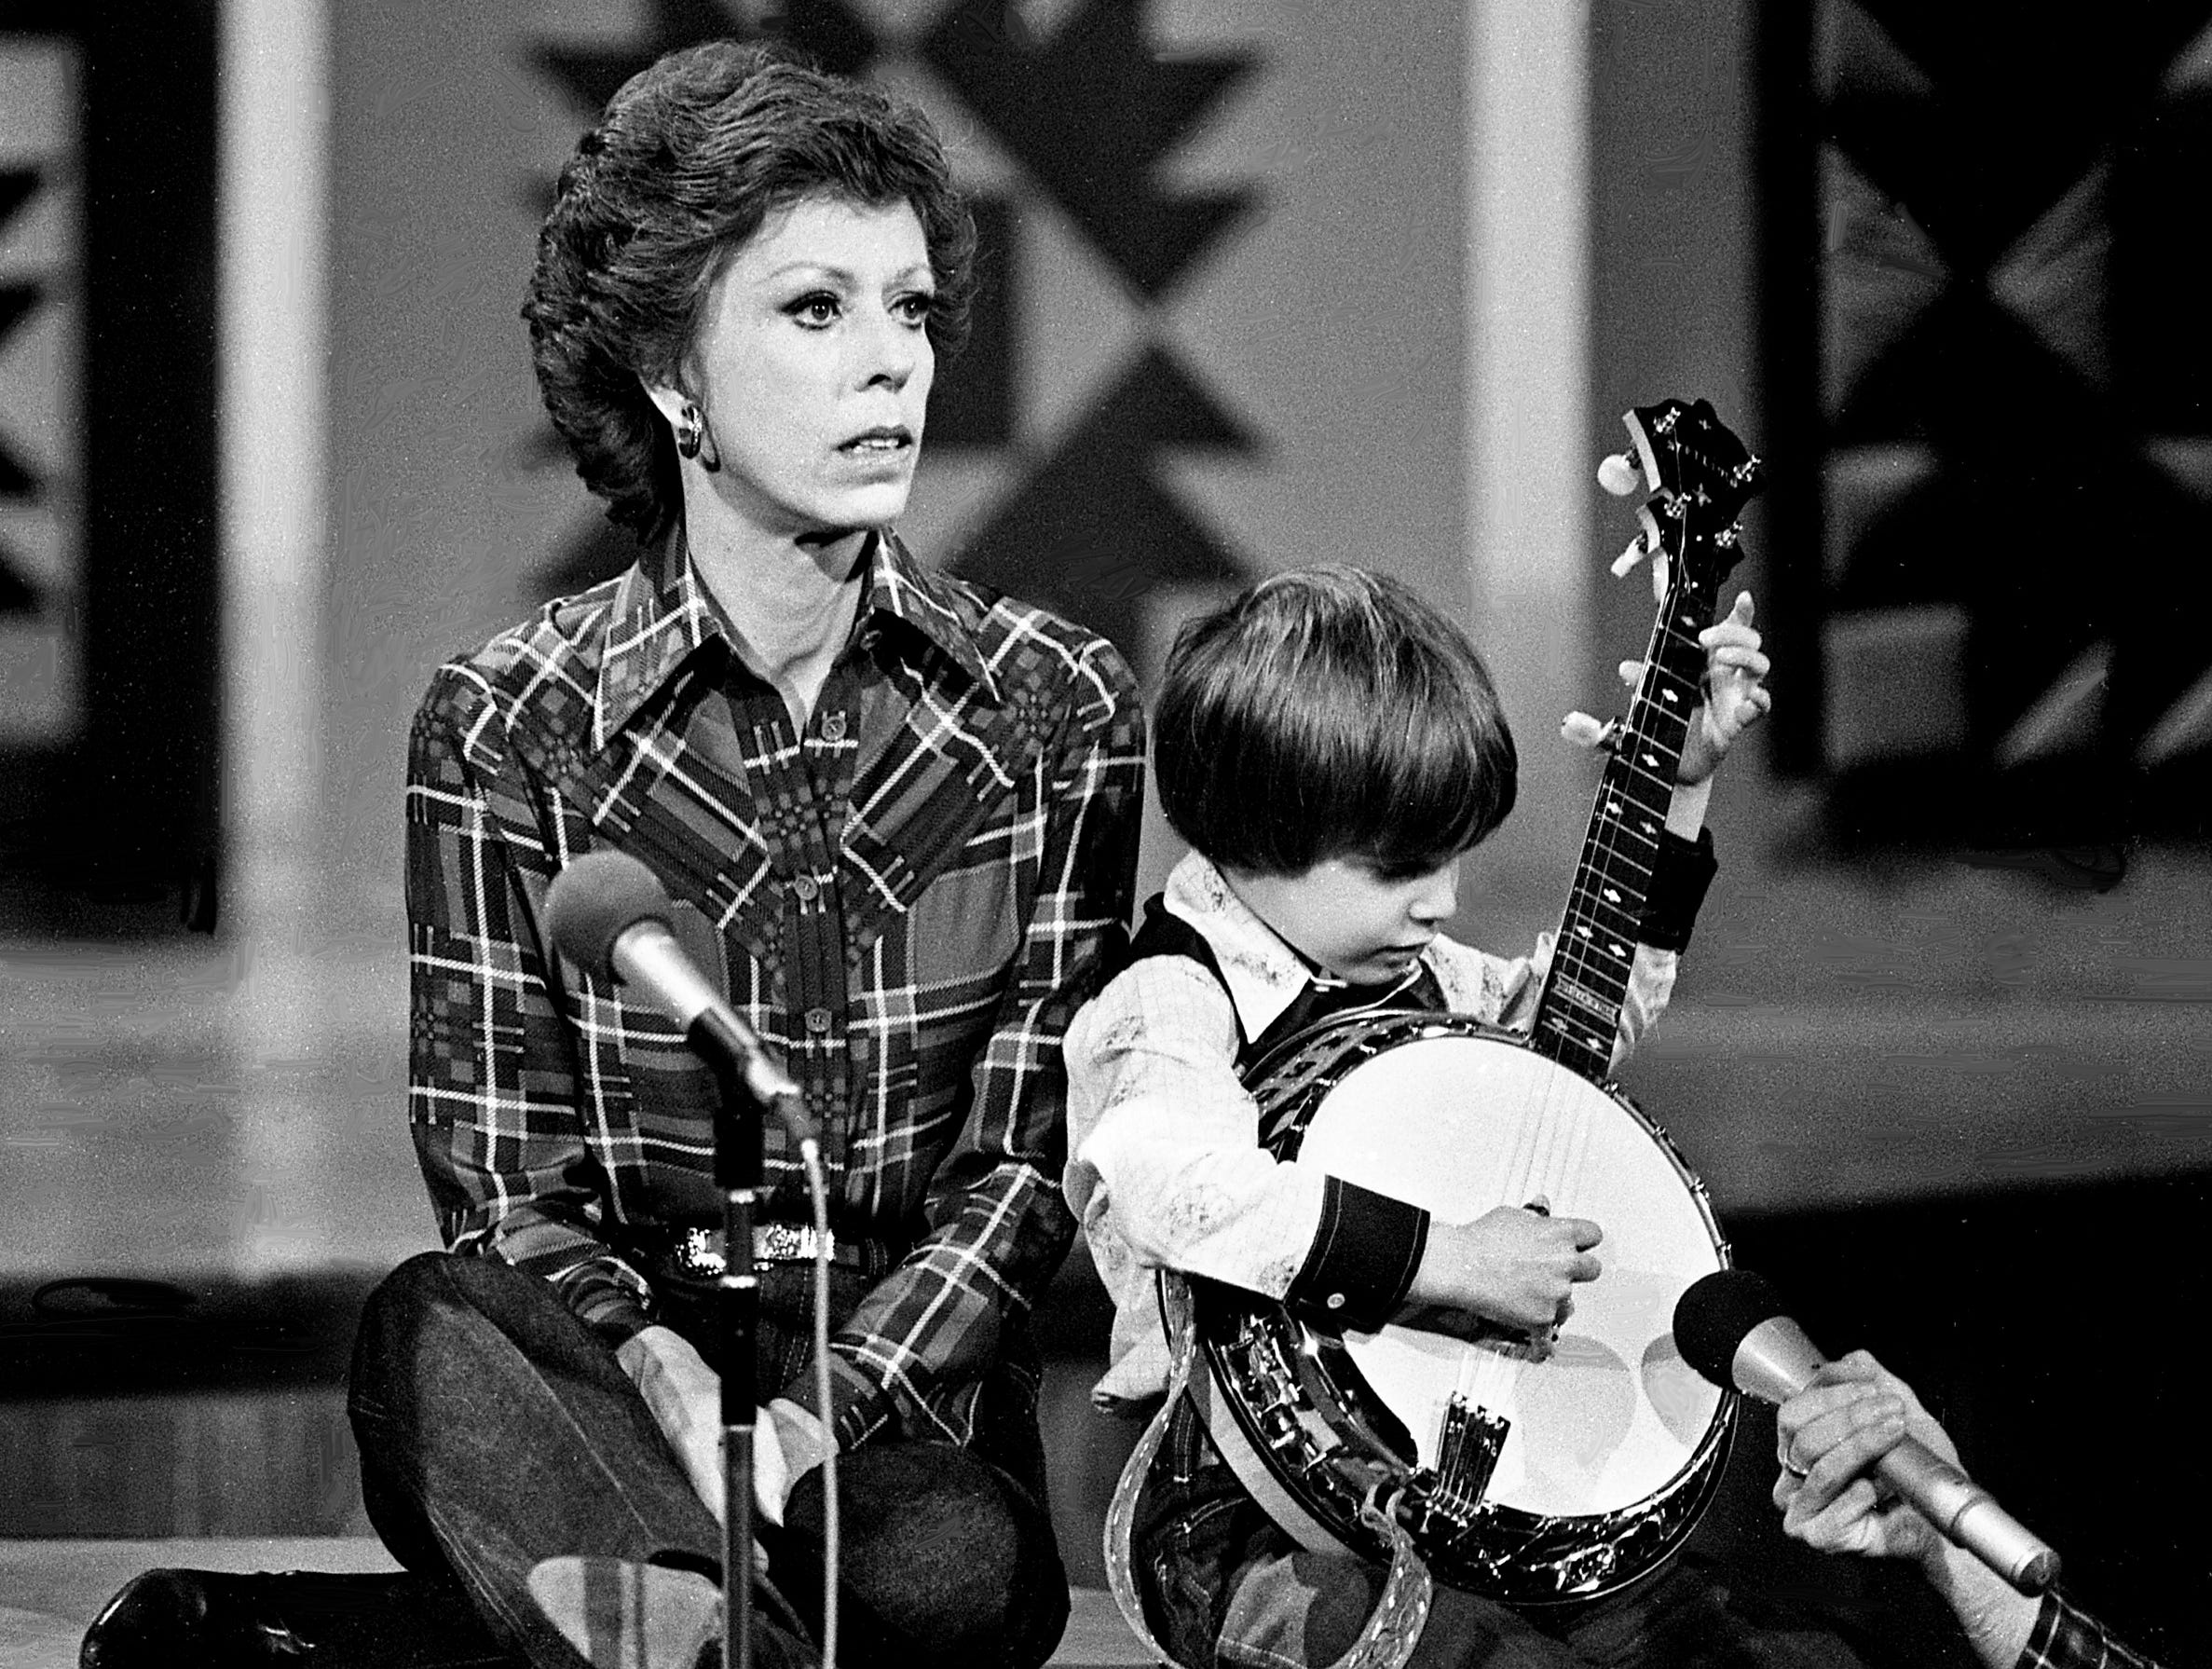 """Six-year-old banjo wizard Lewis Phillips, right, is teaching Carol Burnett how to play the banjo during the """"No one picks like a Nashville picker"""" skit during the taping of the """"Dolly and Carol in Nashville"""" television special before a packed audience at the Grand Ole Opry House Jan. 10, 1979."""